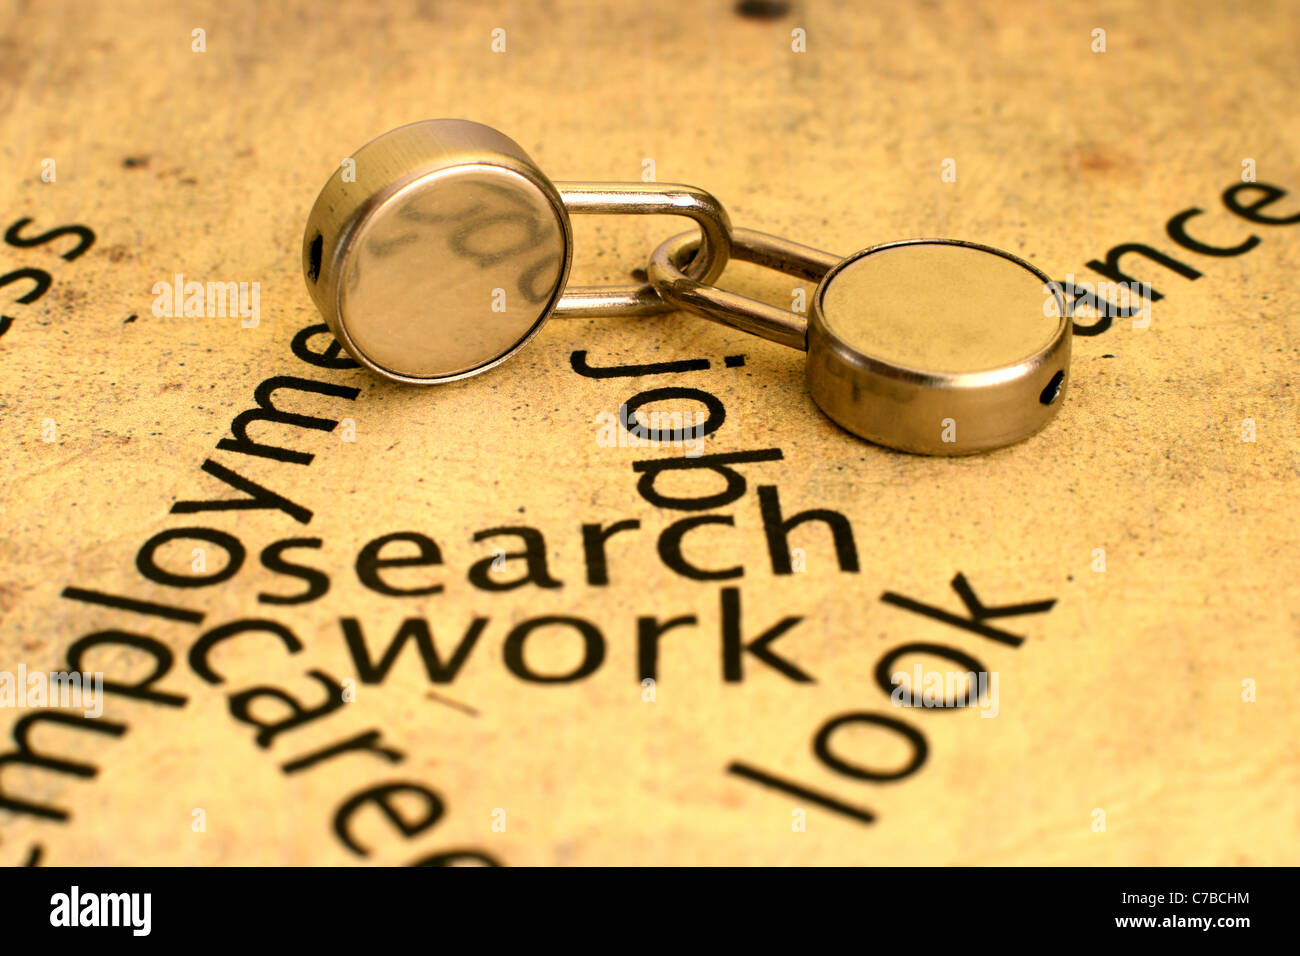 Search job - Stock Image